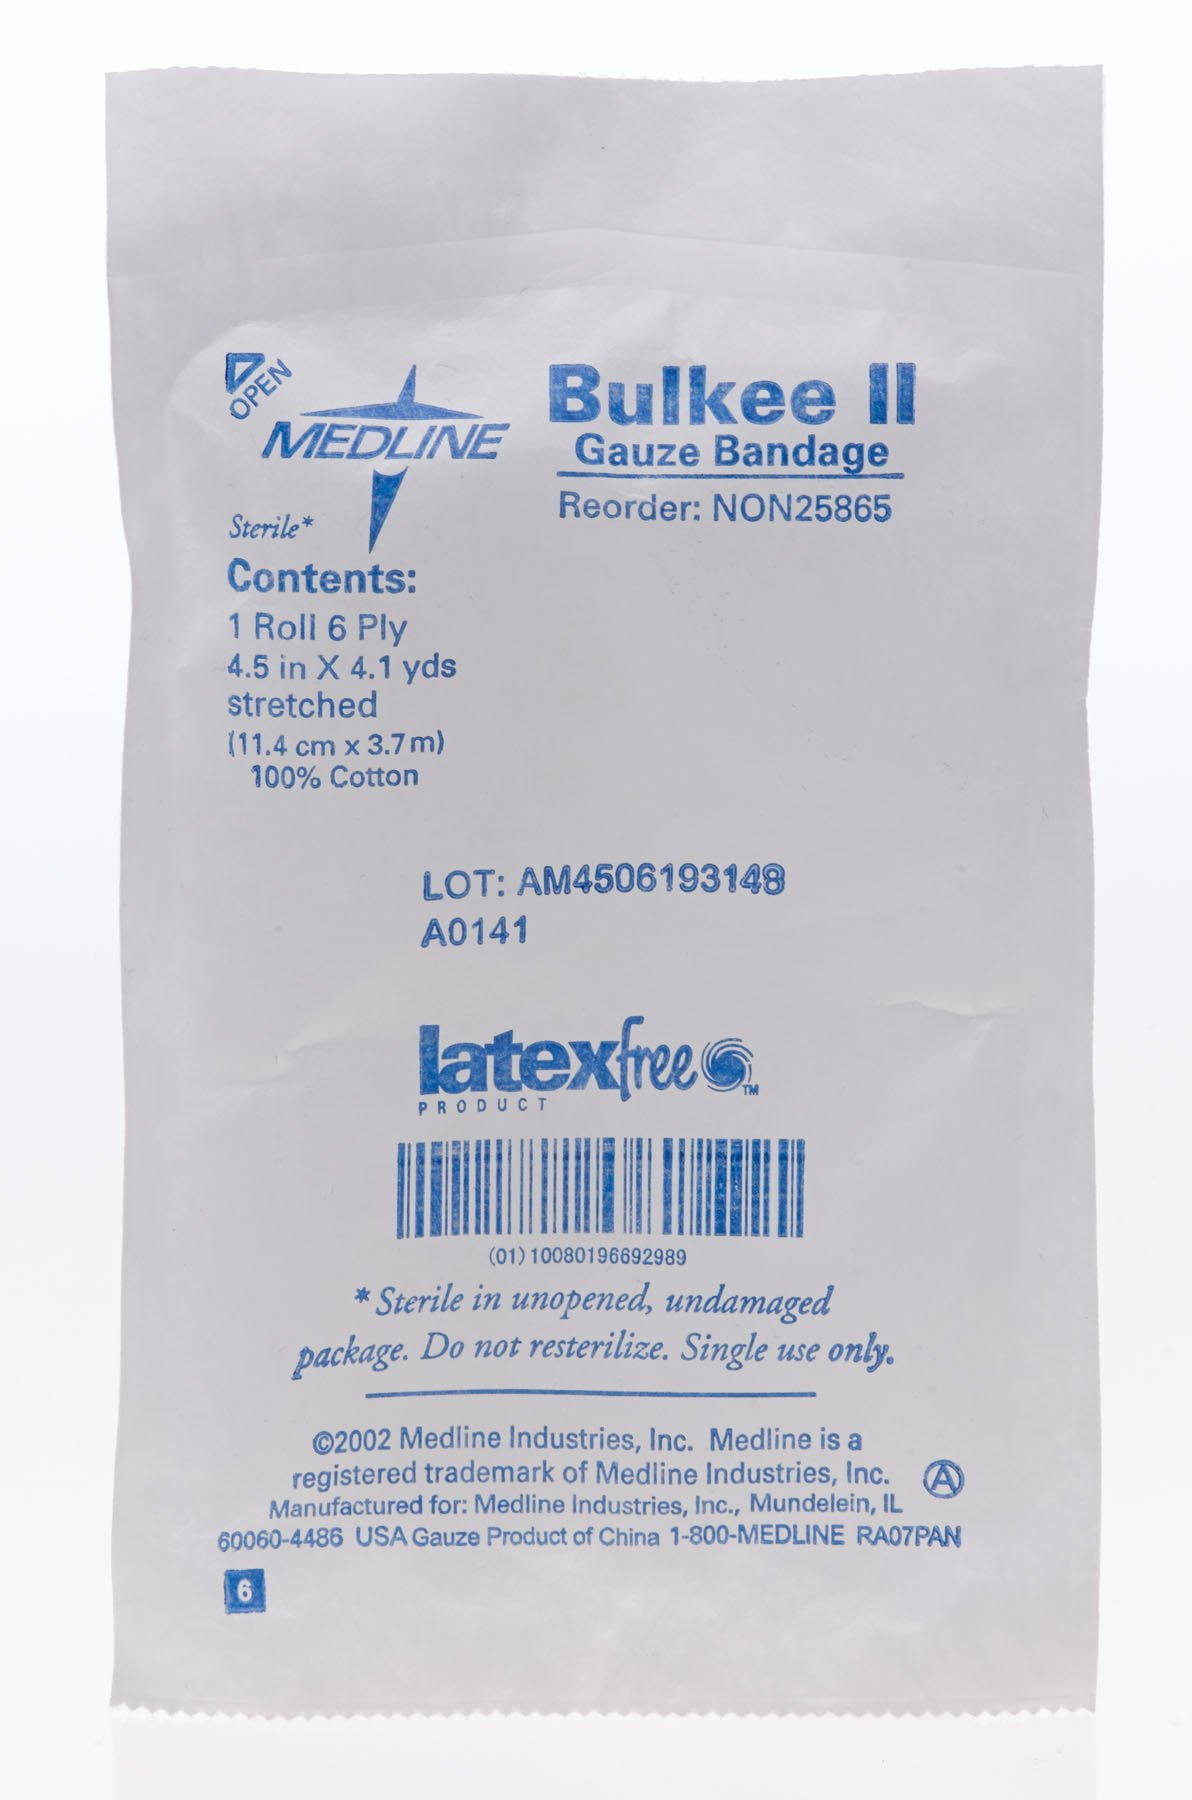 Medline Bandage Gauze Bulkee Ii, 4.5 Inch x 4.1 Yard, 100 Count